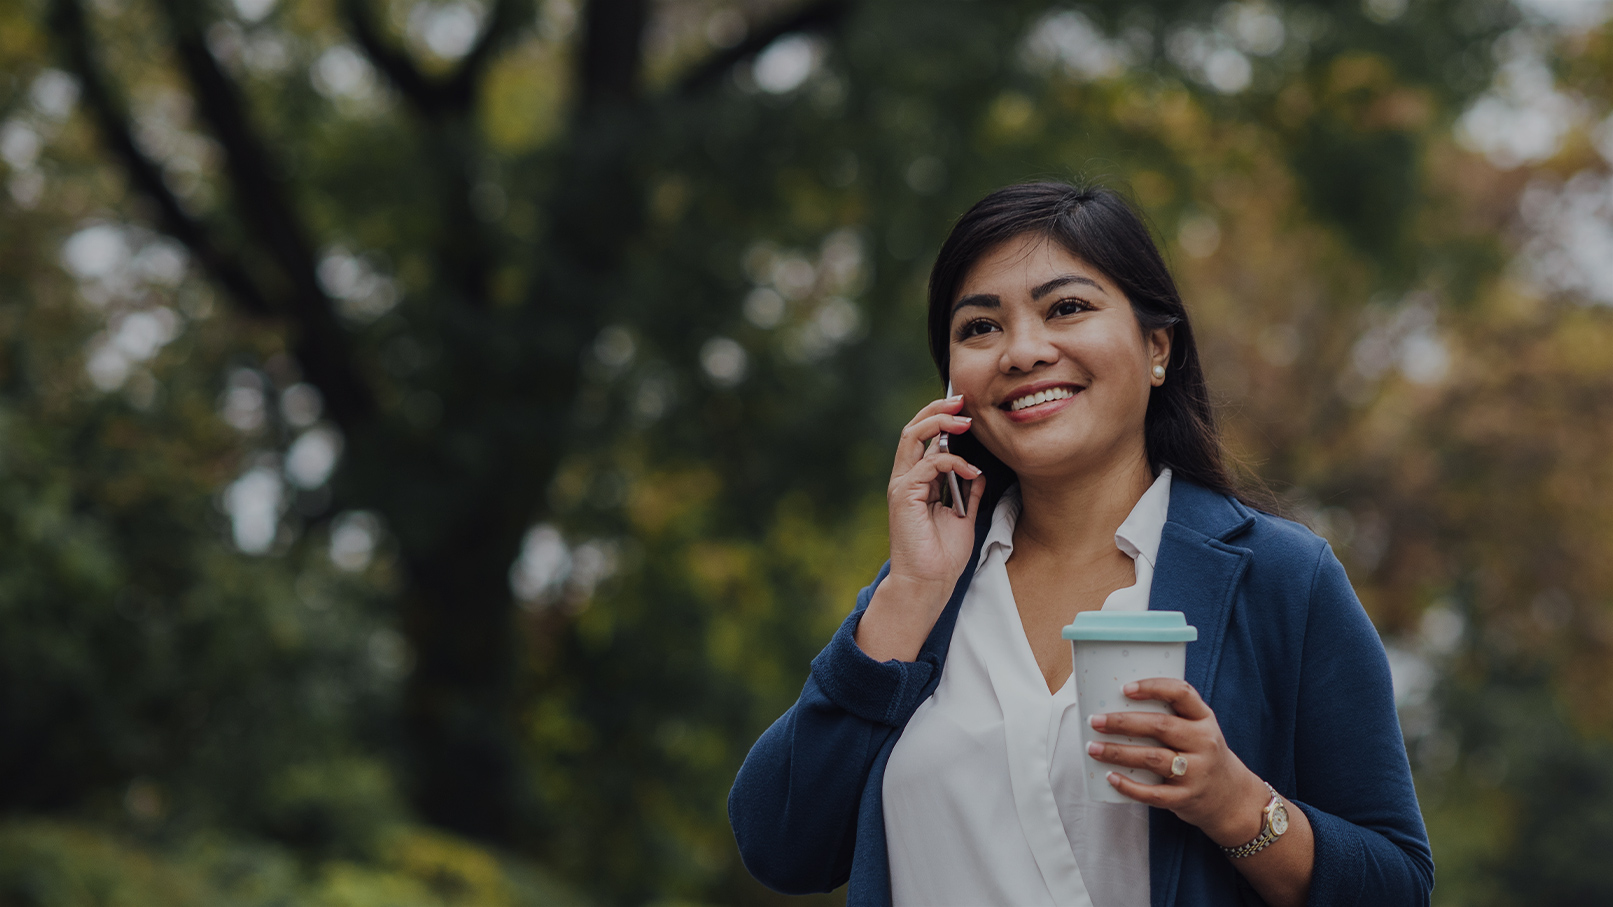 Woman walking while on cell phone